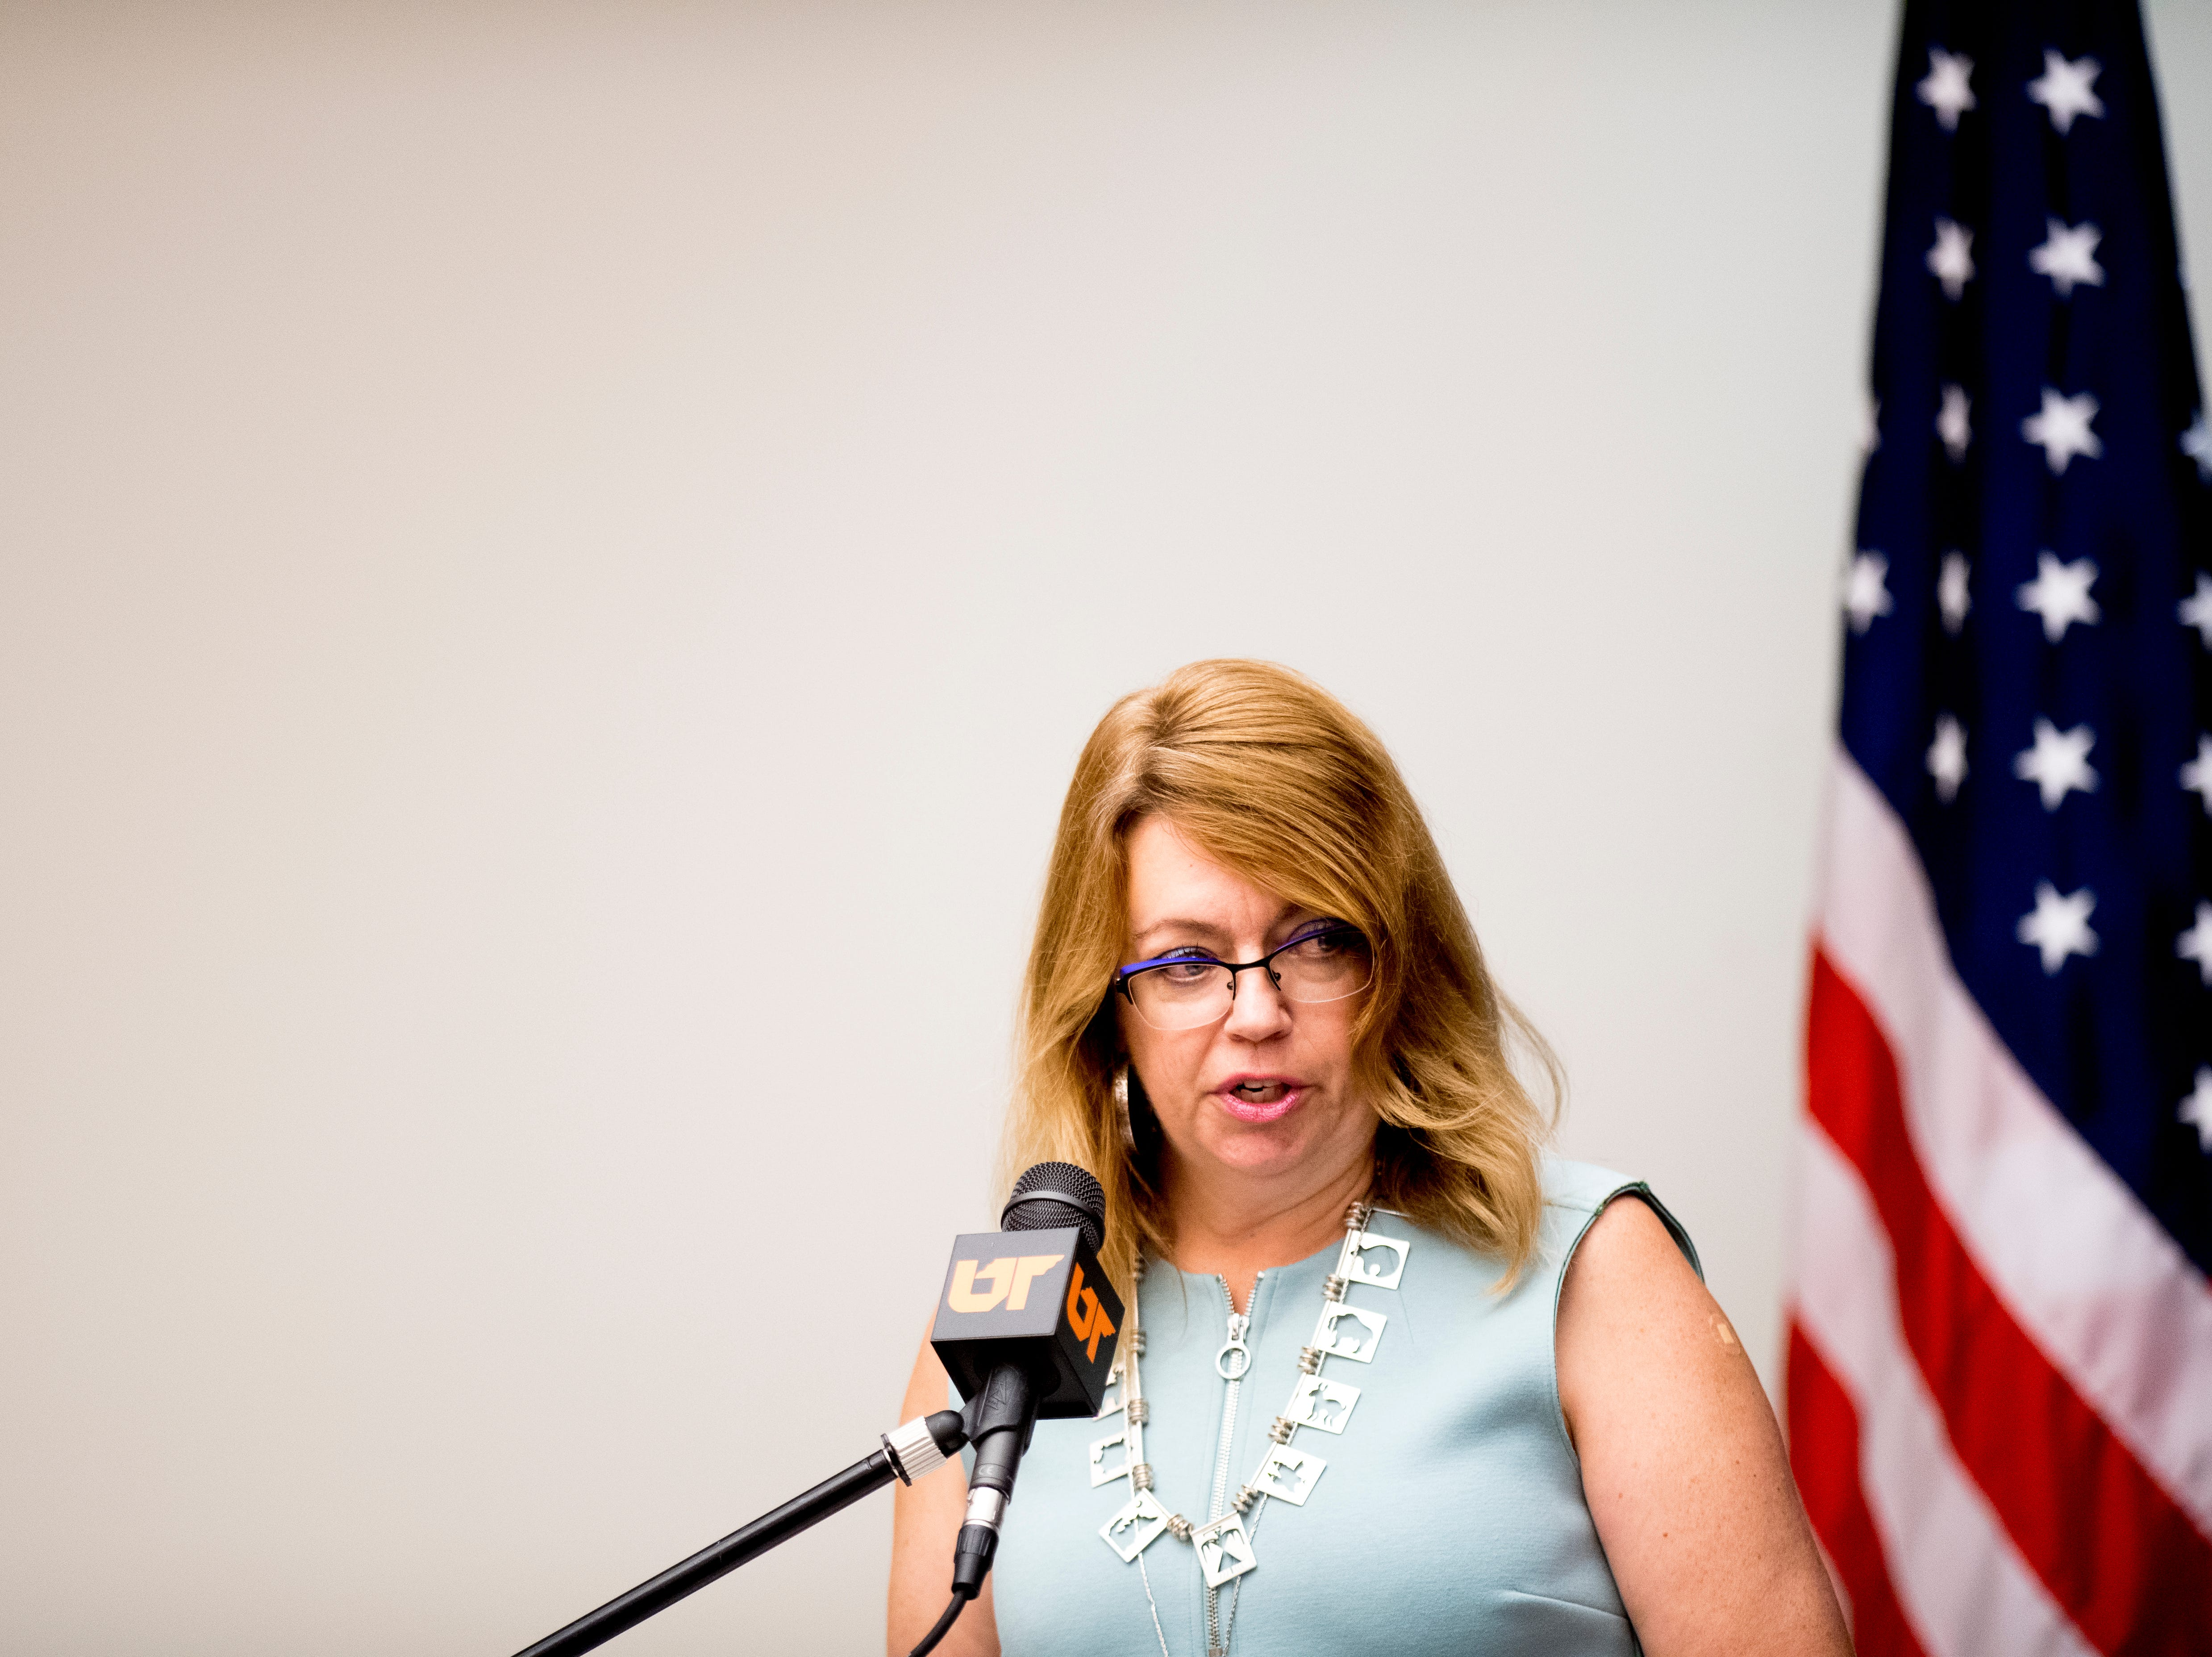 Tina Richey, a UTK research associate, speaks against the appointment of Randy Boyd as interim president during a University of Tennessee Board of Trustees meeting at the UTK Visitor's Center in Knoxville, Tennessee on Tuesday, September 25, 2018. The board met to discuss several topics including the installment of an interim president.